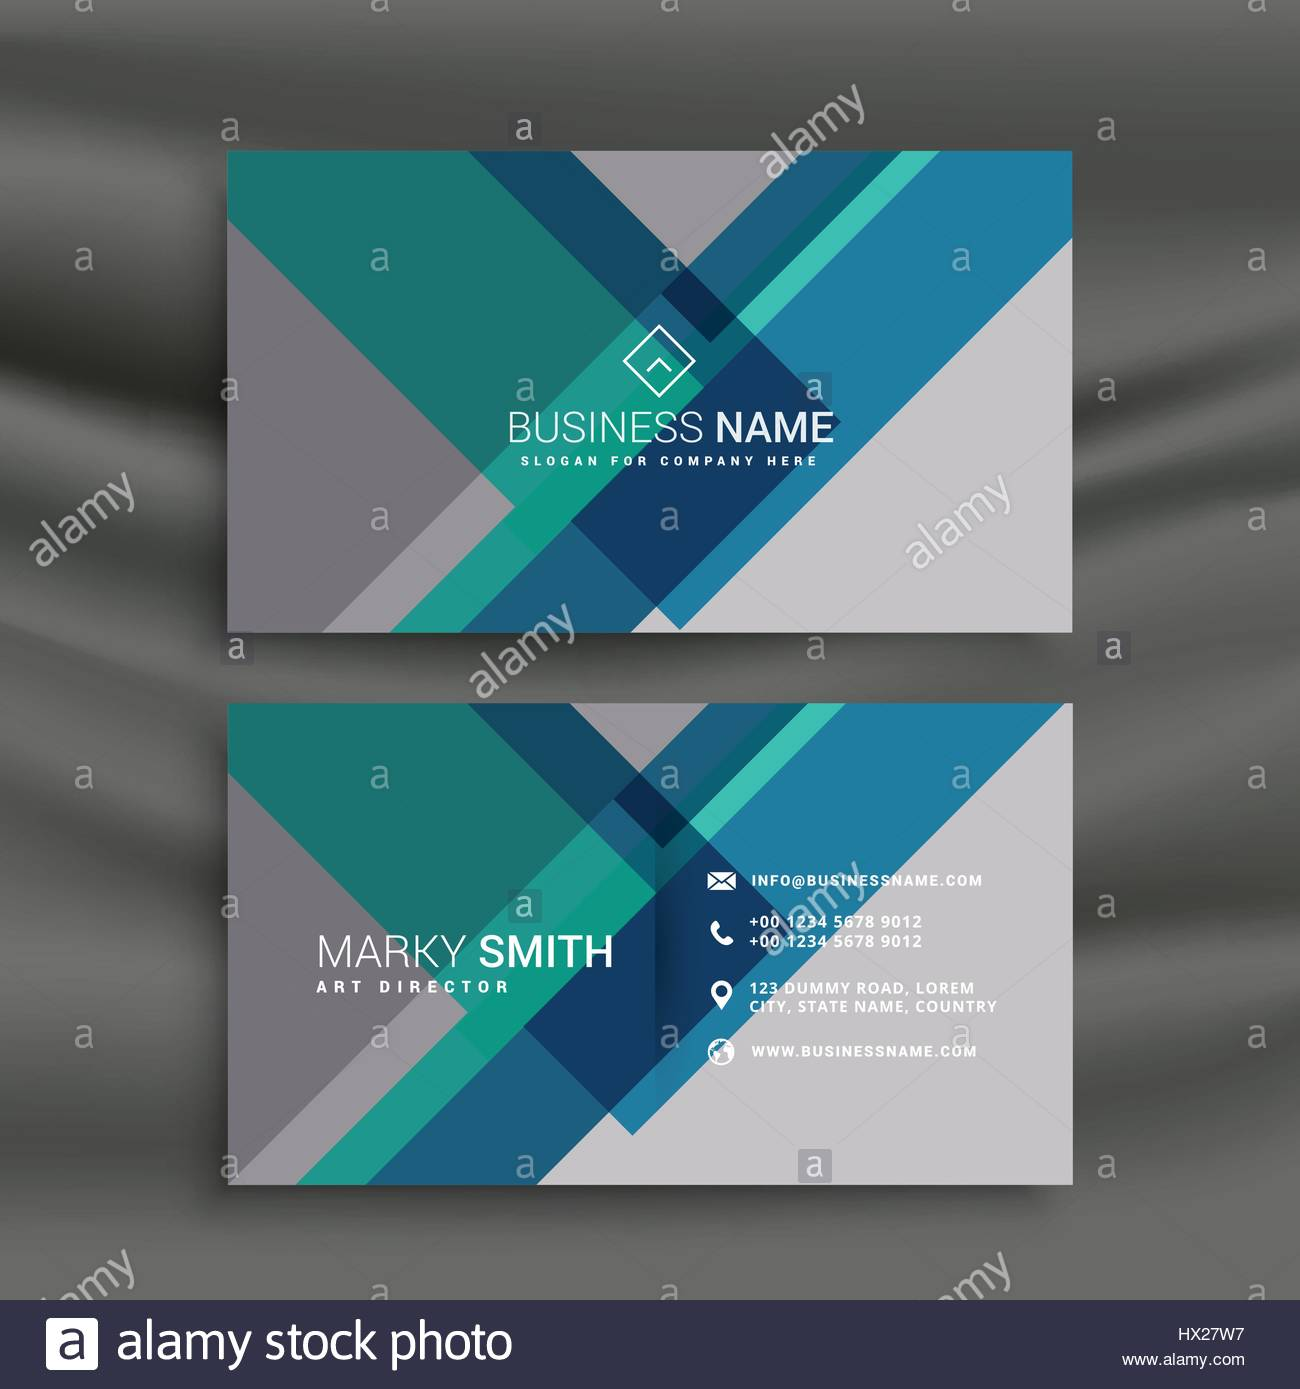 Creative business card design vector with geometric shapes stock creative business card design vector with geometric shapes colourmoves